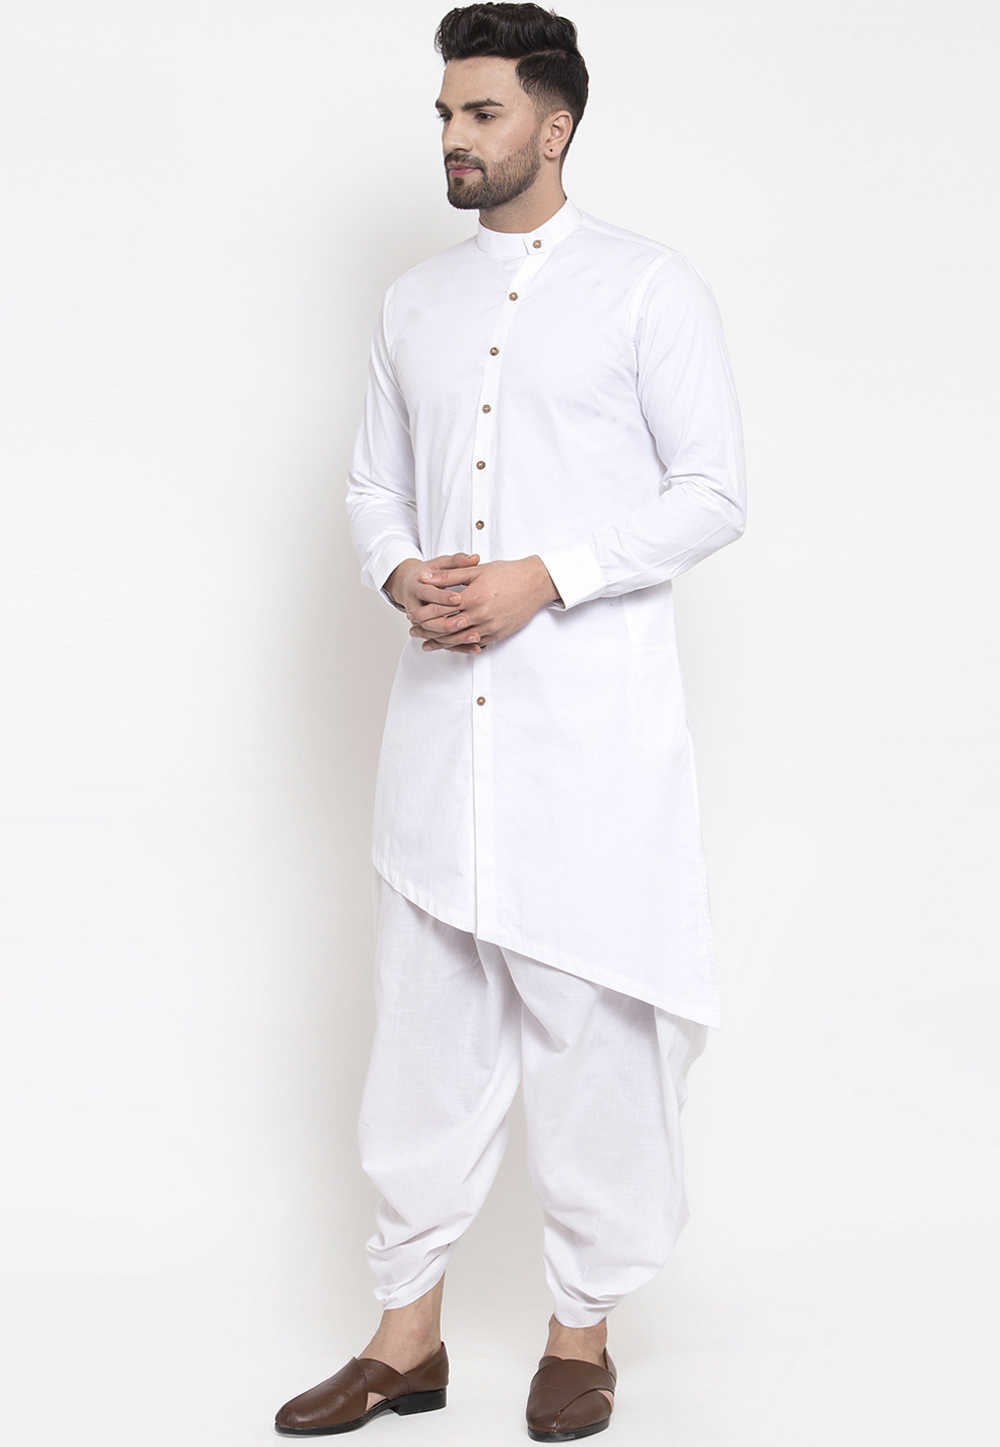 Dhoti and kurta is a famous traditional dress of india